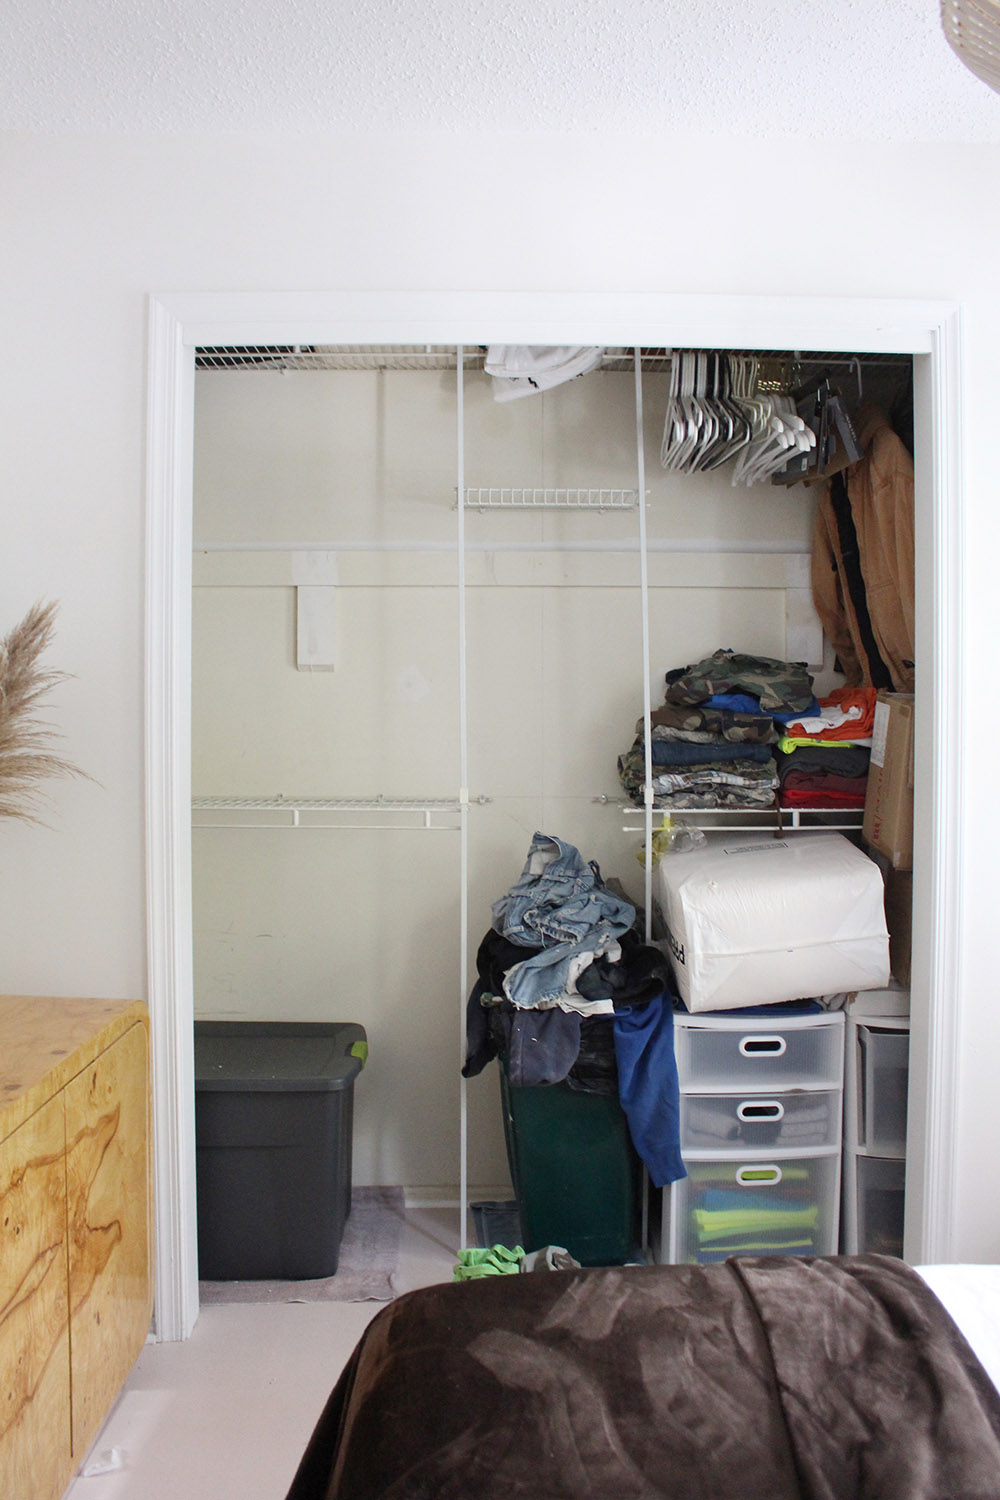 A partially cleaned out closet without doors.